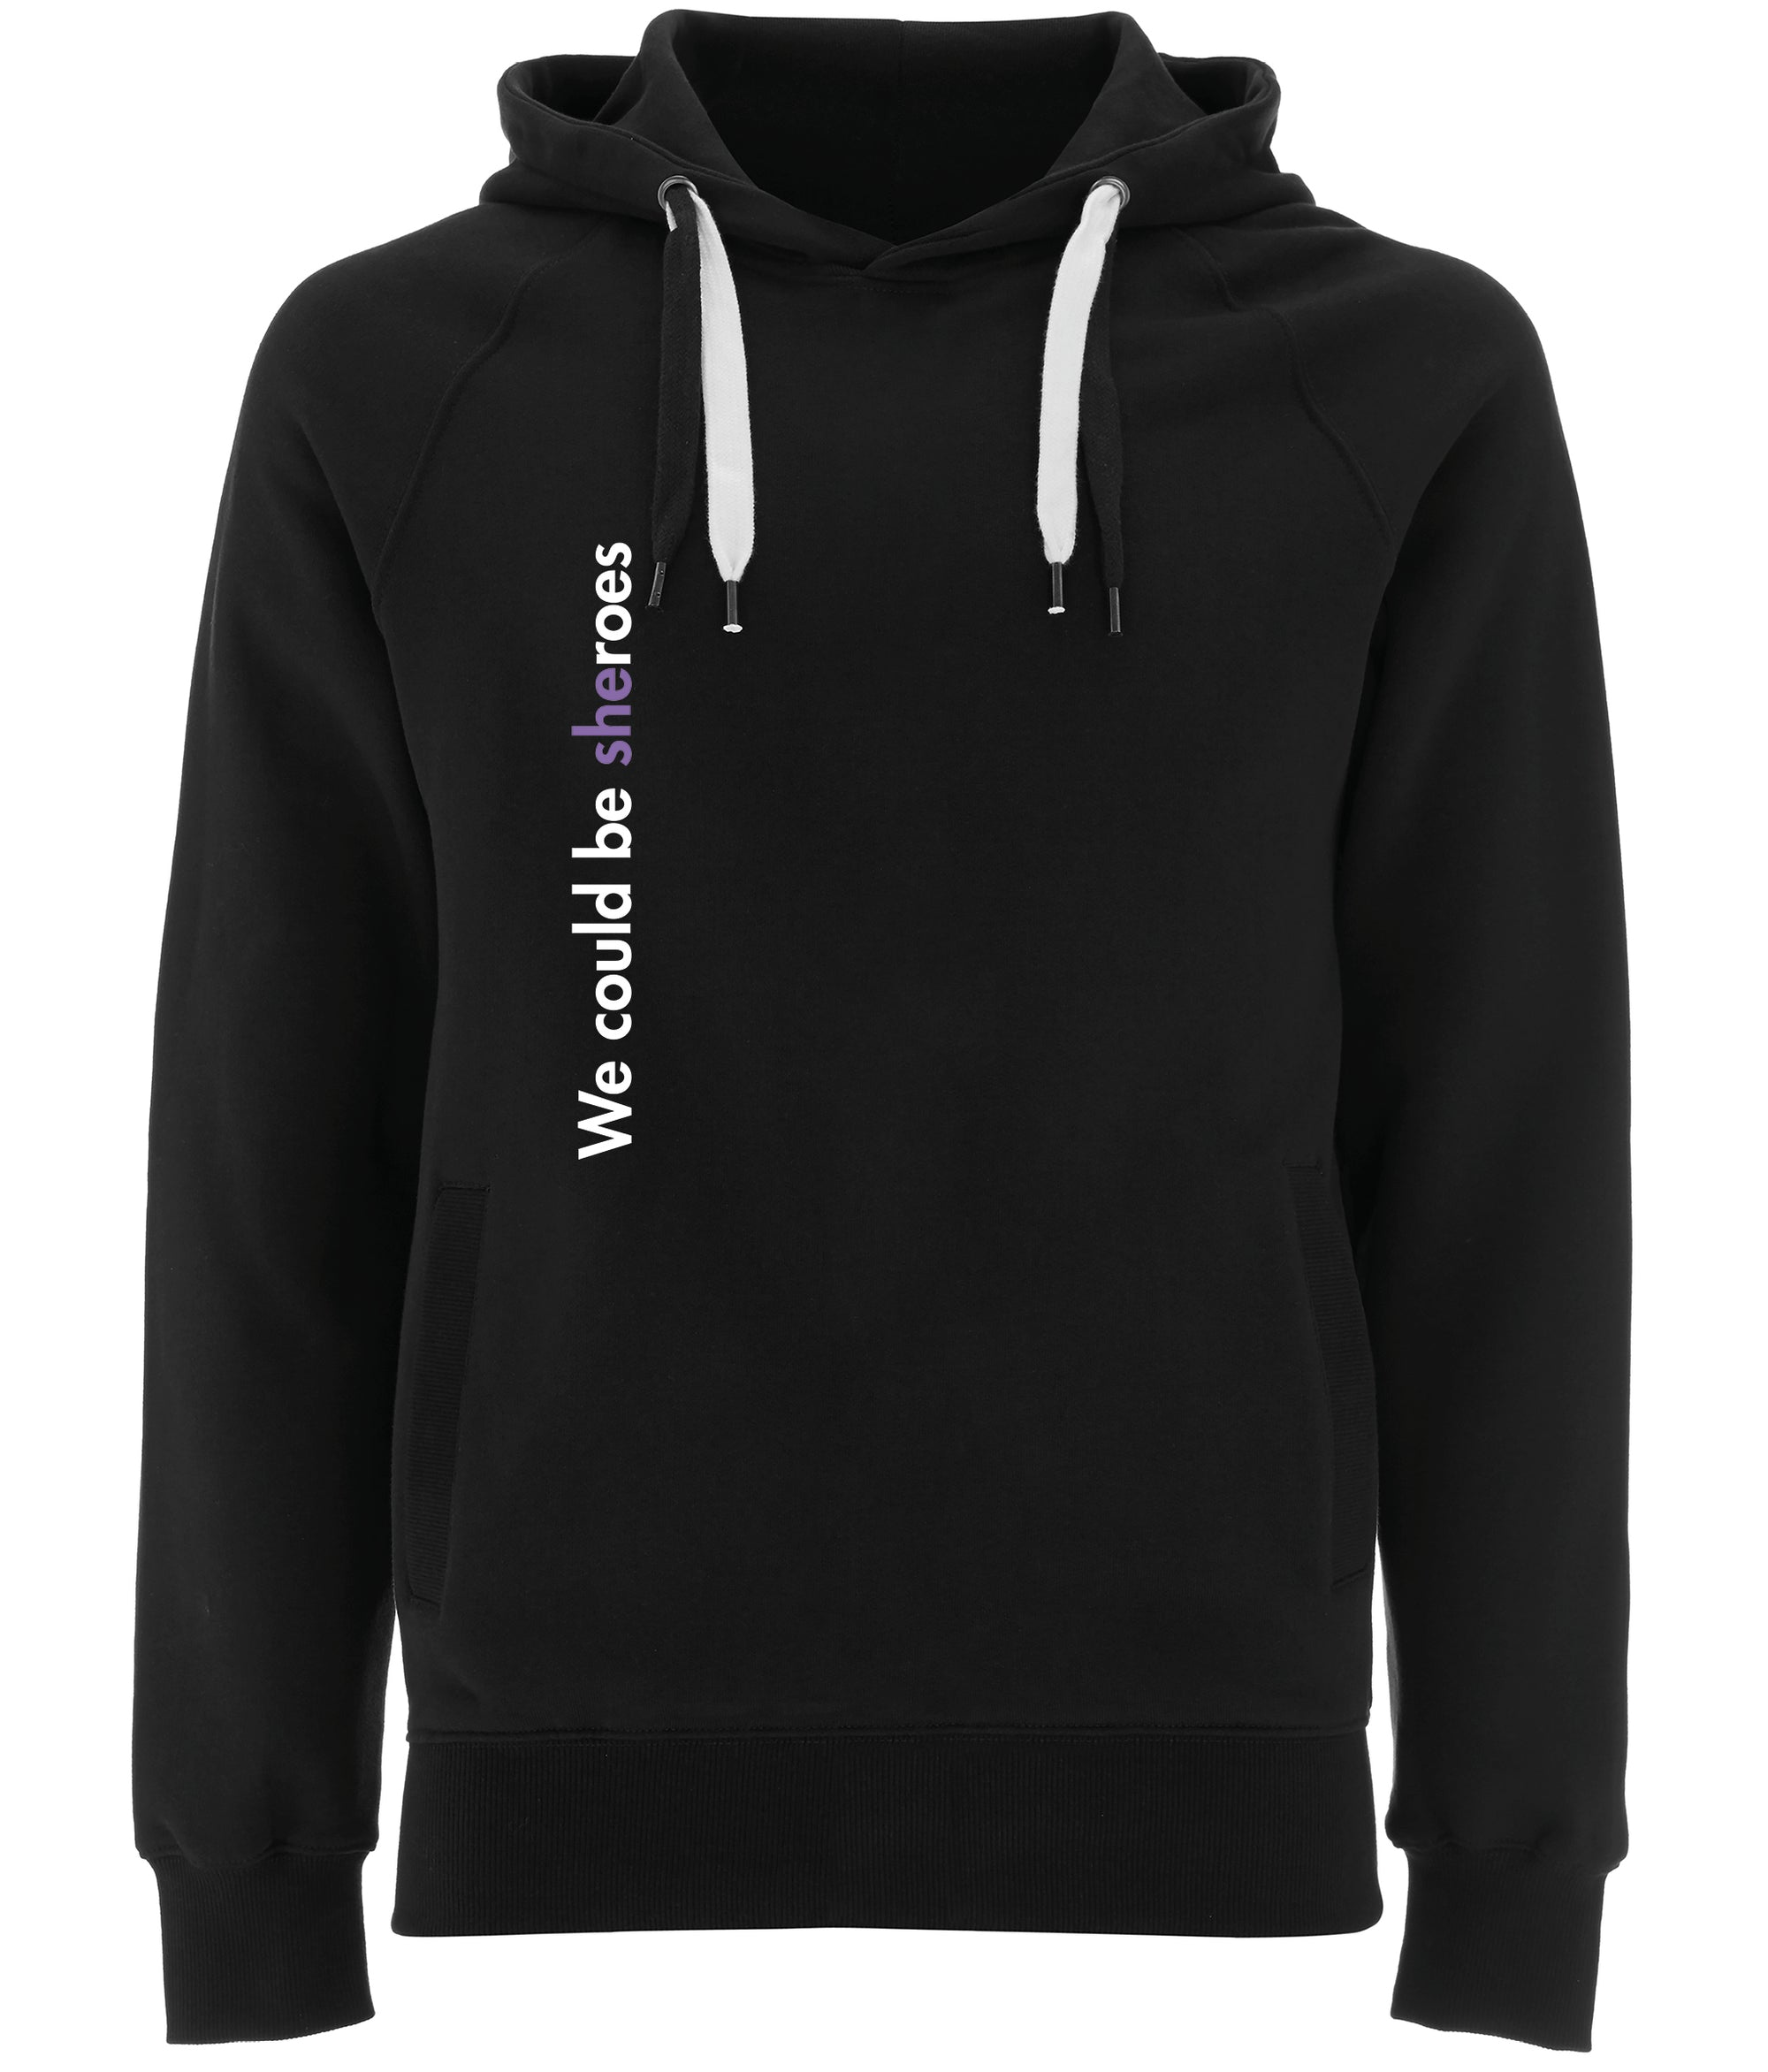 We Could Be Sheroes Organic Combed Cotton Hoodie Black